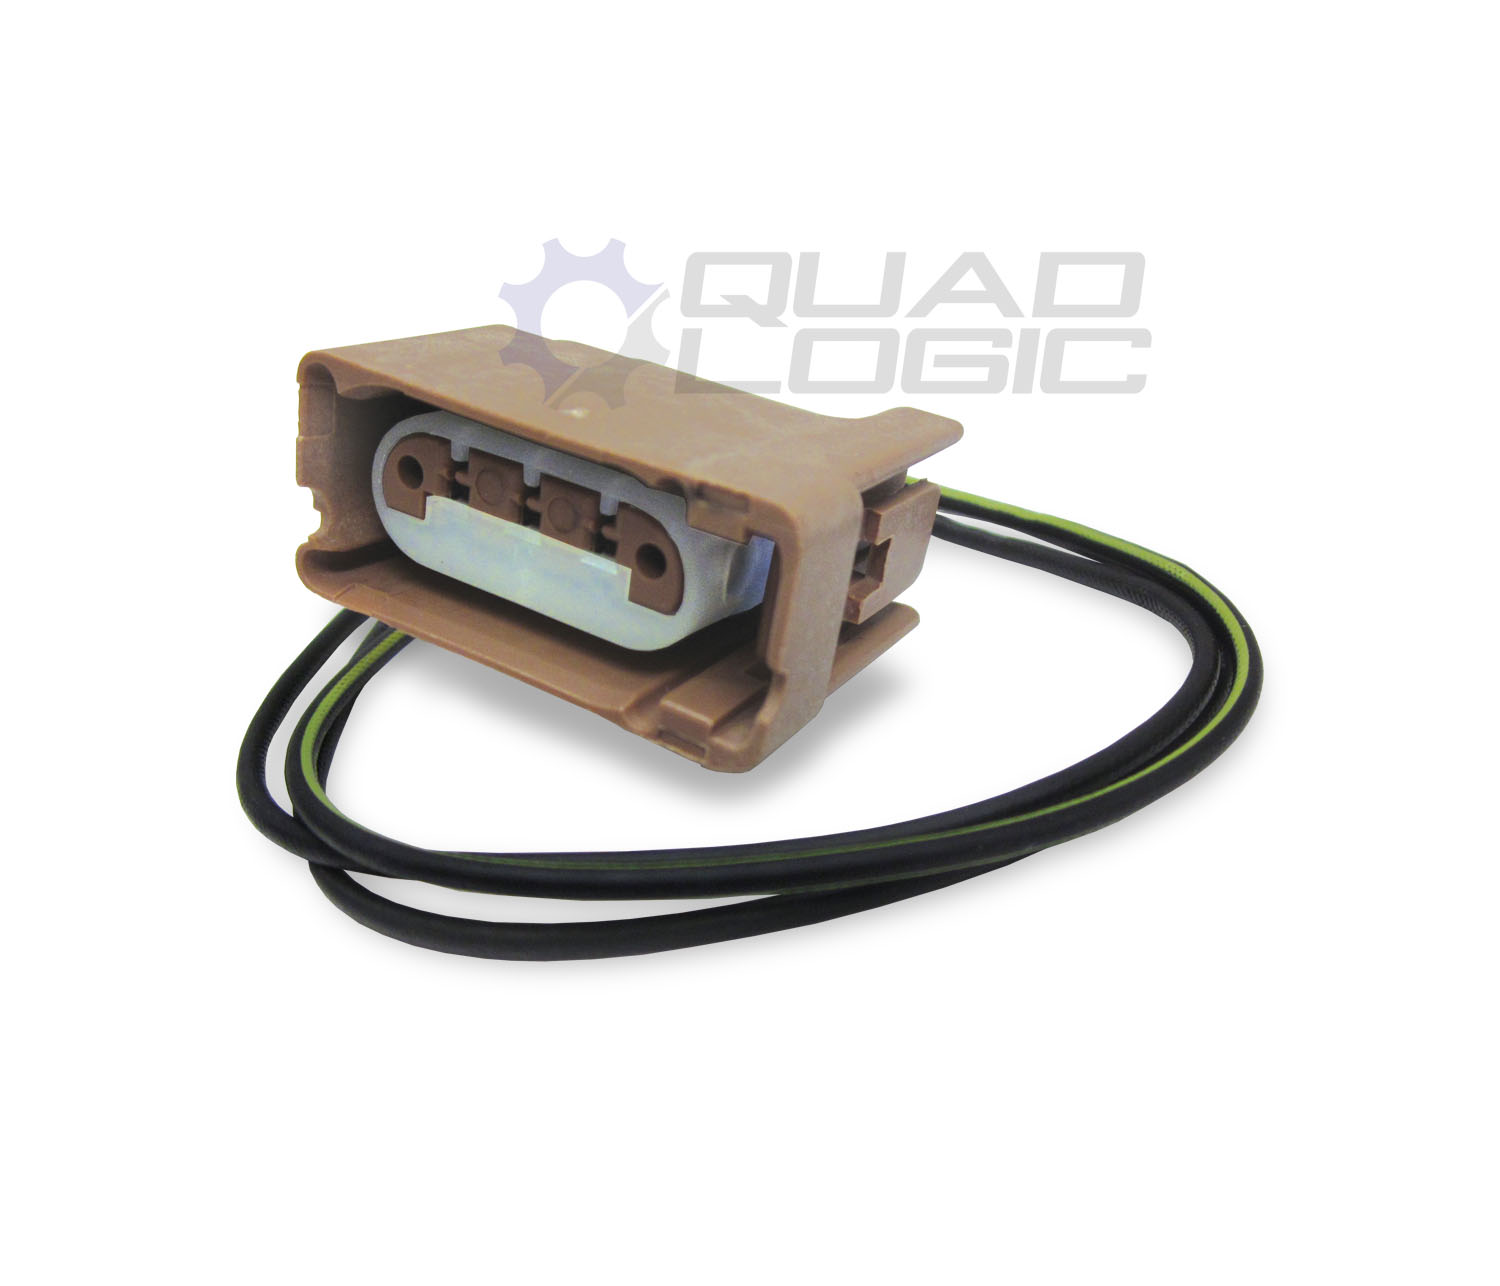 1825108 2002 5 3 4l60e 4l80e Wiring Connections besides Heat Shrink Boots 3 Way moreover Sonobond Ultrasonic Metal Welders Generate Significant Savings Over Both Resistance Welding And Crimp Solder Methods together with Ribbon Cableribbon Cable Connectorsribbon Cable Connectoridc Ribbon Cable Connectors16 Pin Ribbon Cable Connectorribbon Cable Connector Typeslaptop Ribbon Cable Connectors P203 likewise Sale 2627266 Electronic Wire Harness Oem 40 Pin Lvds Cable Assembly For Led Screen. on electrical wire harness